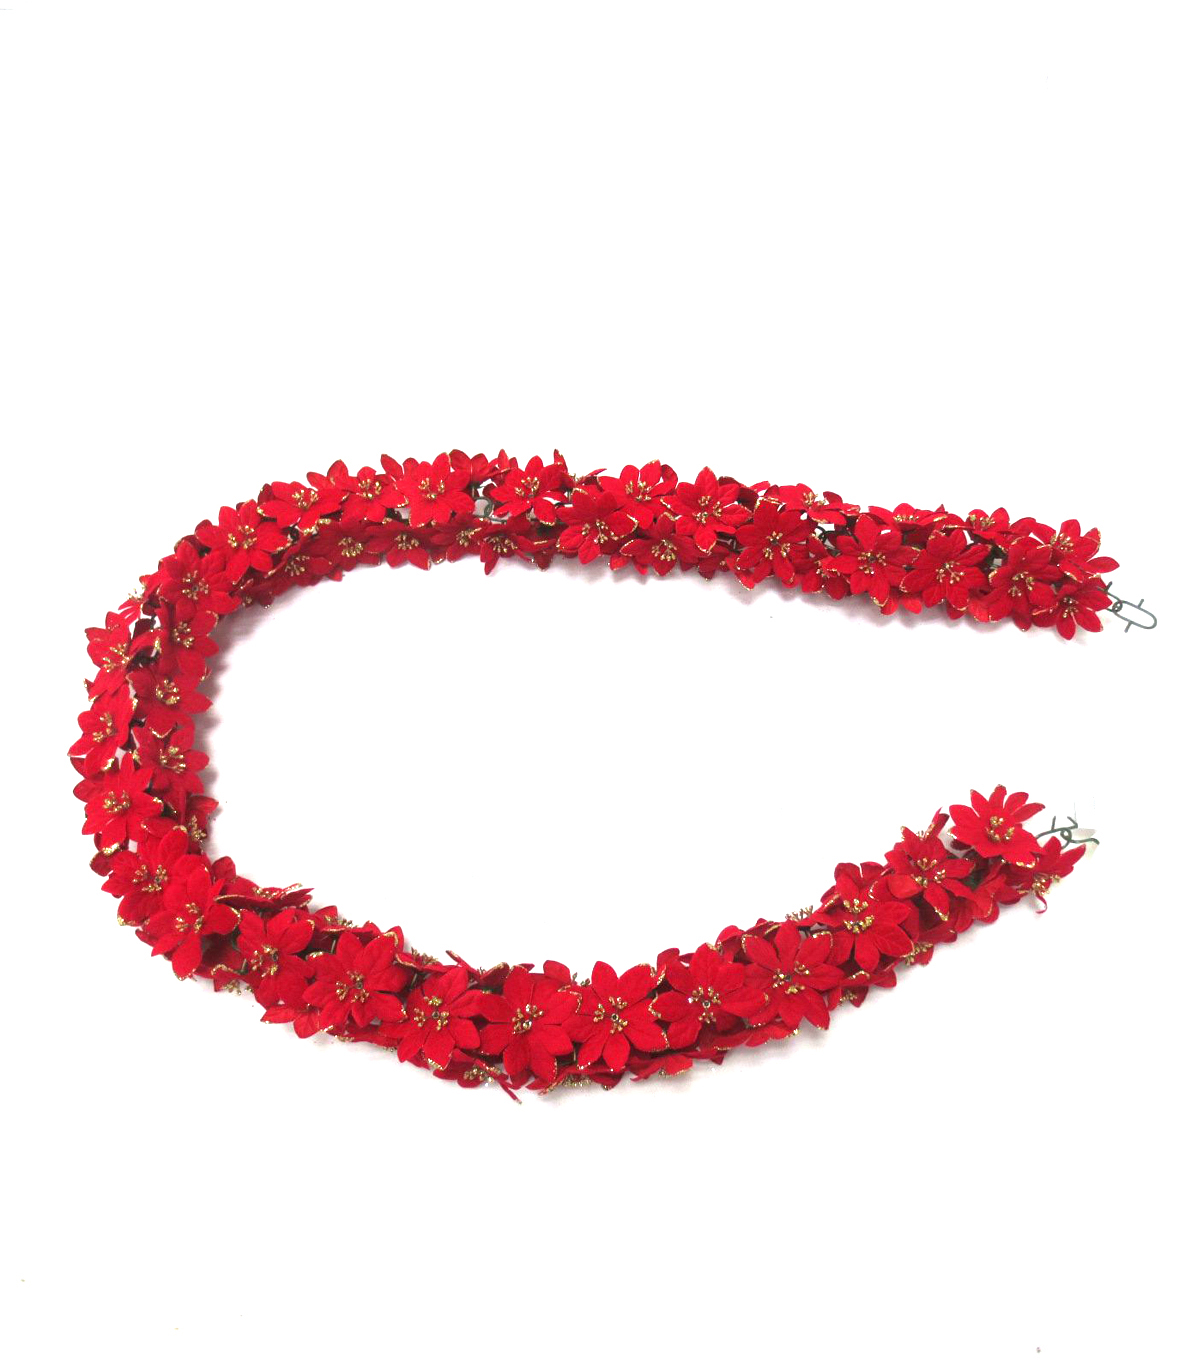 Blooming Holiday Christmas 4''x66'' Glitter Poinsettia Chain Garland Red                      Blooming Holiday Christmas 4''x66'' Glitter Poinsettia Chain Garland Red by Blooming Holiday